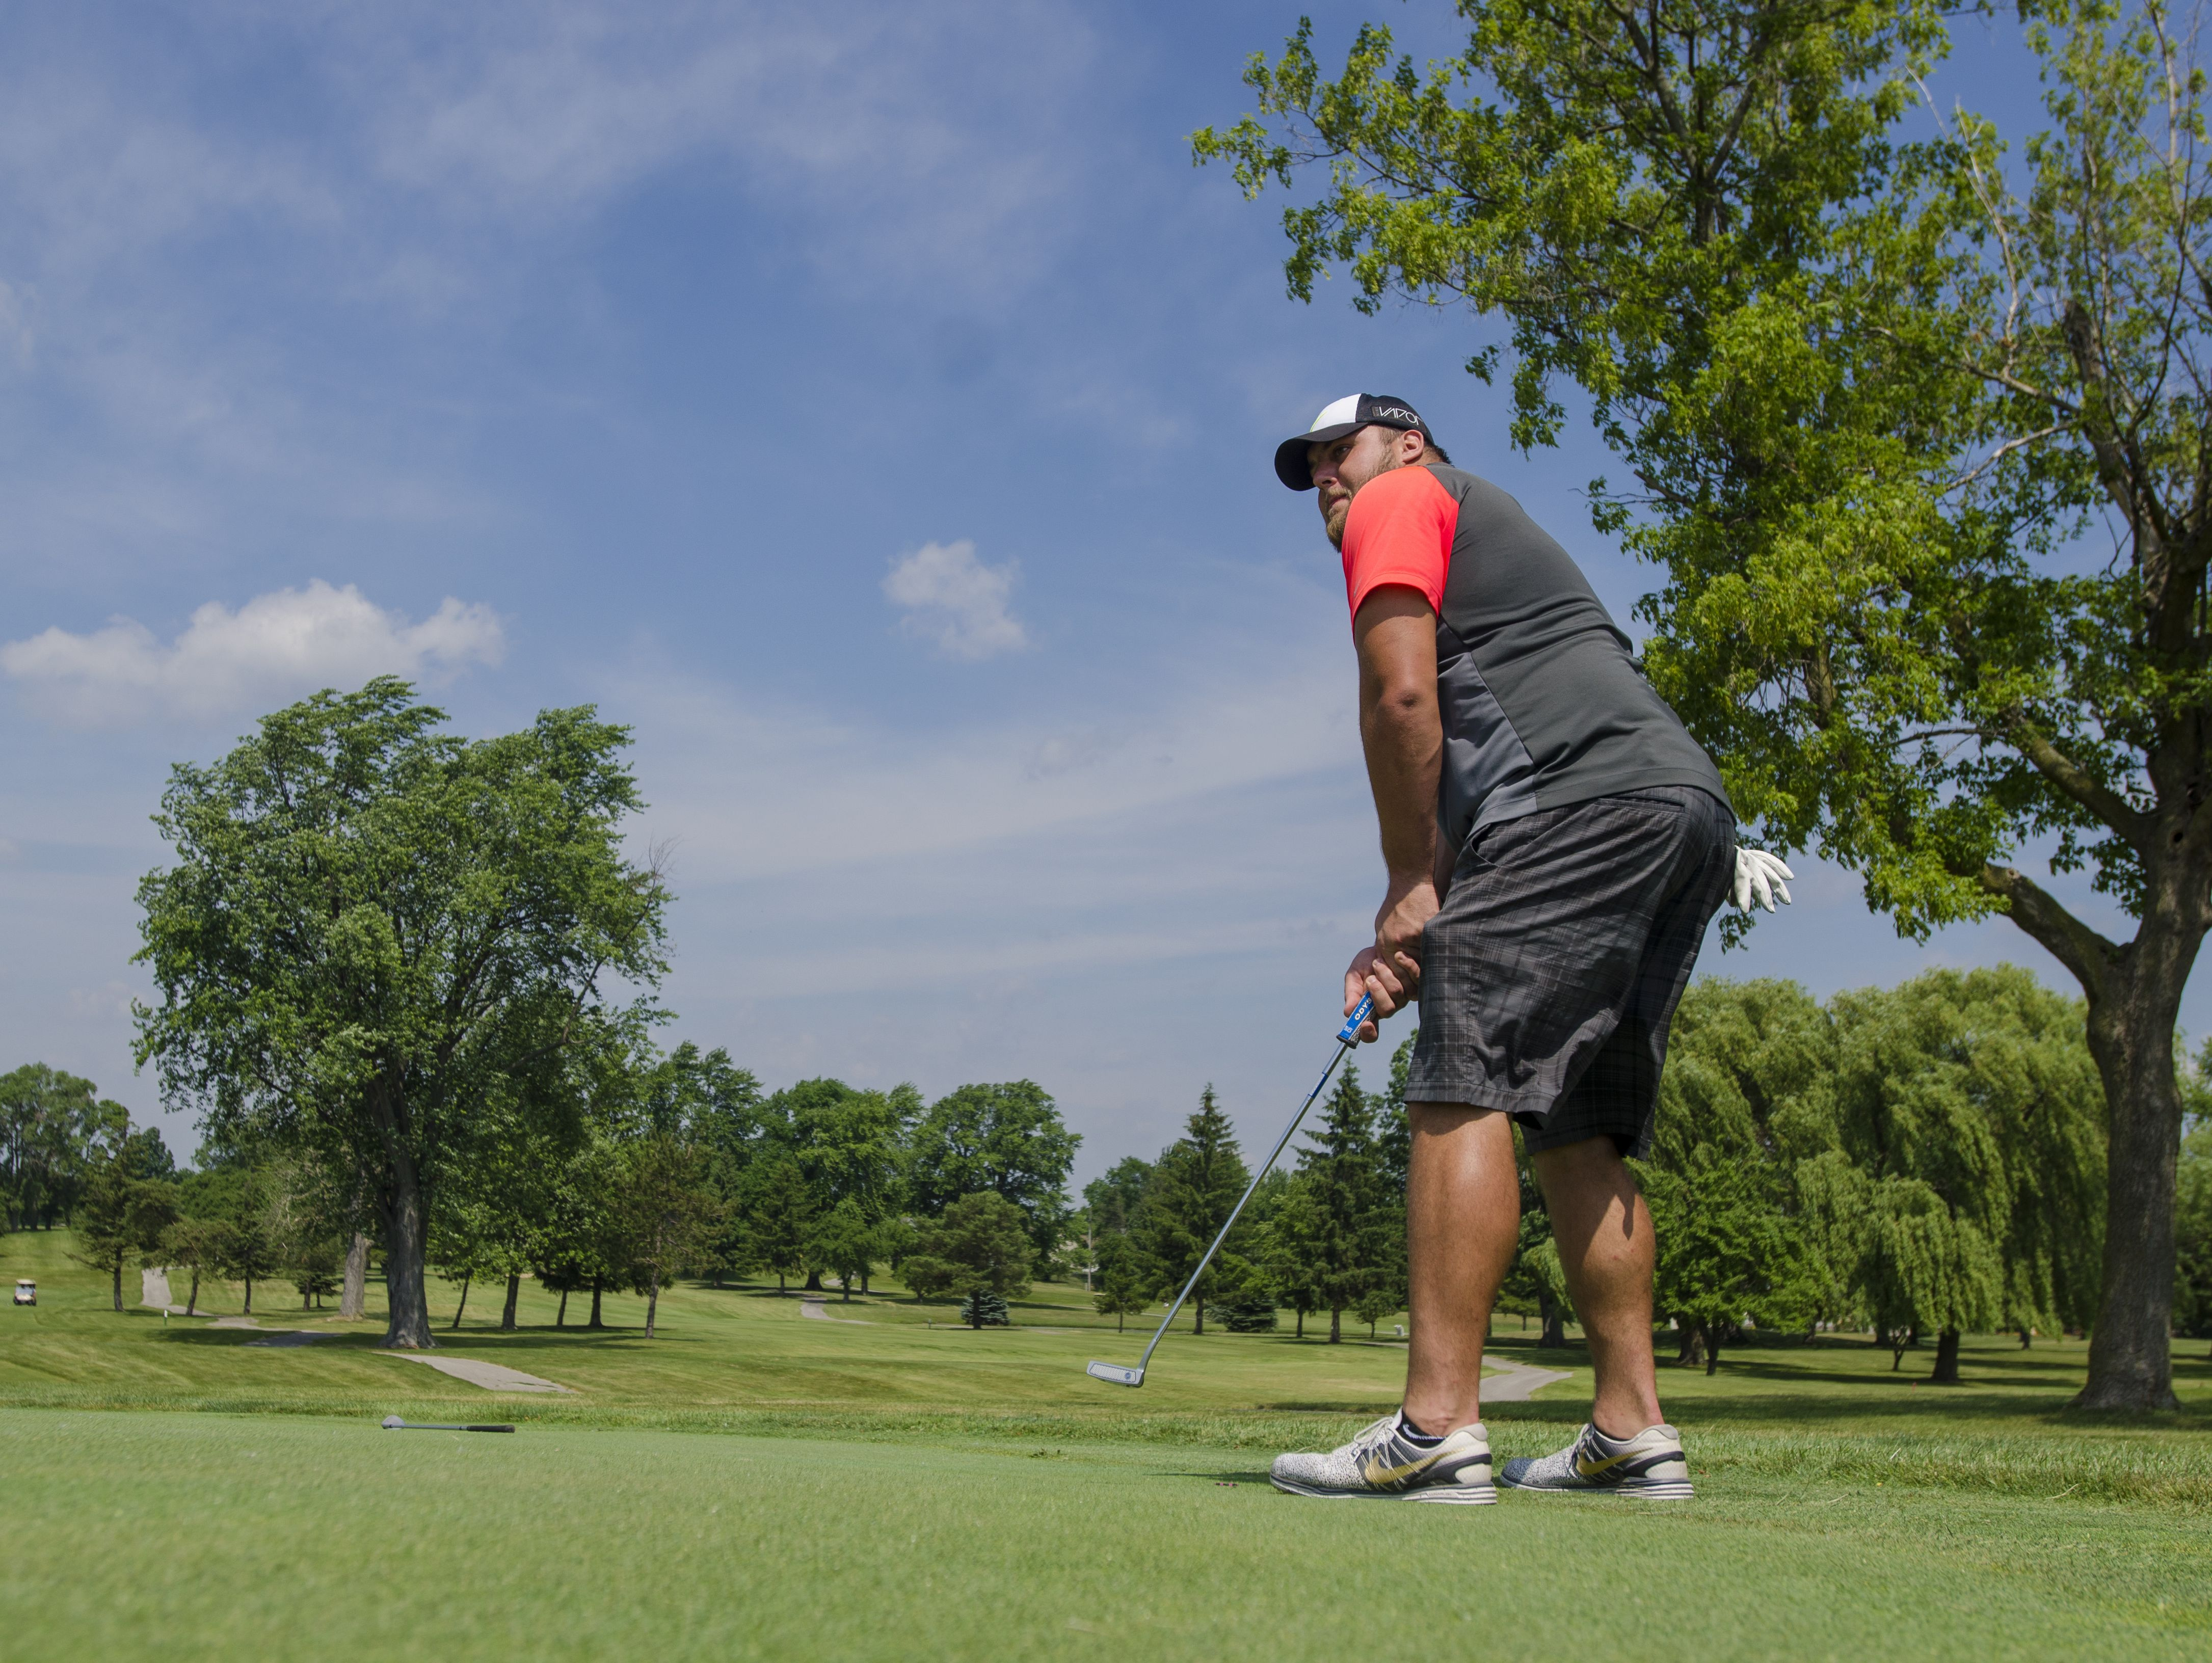 Tim Lelito watches his putt approach the hole Monday, June 20, during the Lelito Legacy Golf Outing at St. Clair Golf Cub.